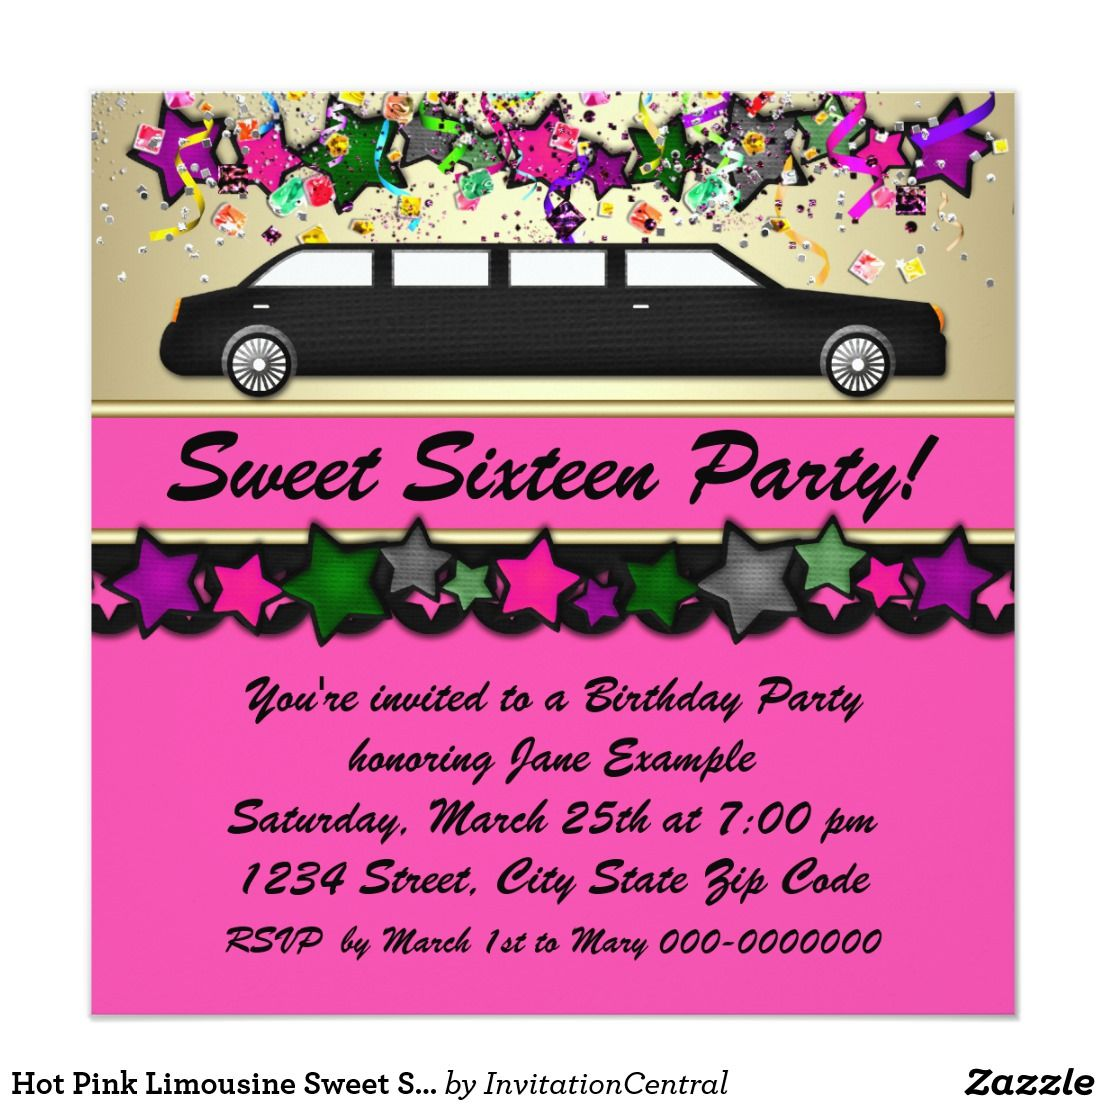 Hot pink limousine sweet sixteen party invitations pinterest this colorful fun hot pink confetti stars and limousine birthday party invitation this elegant and bright hot stopboris Image collections